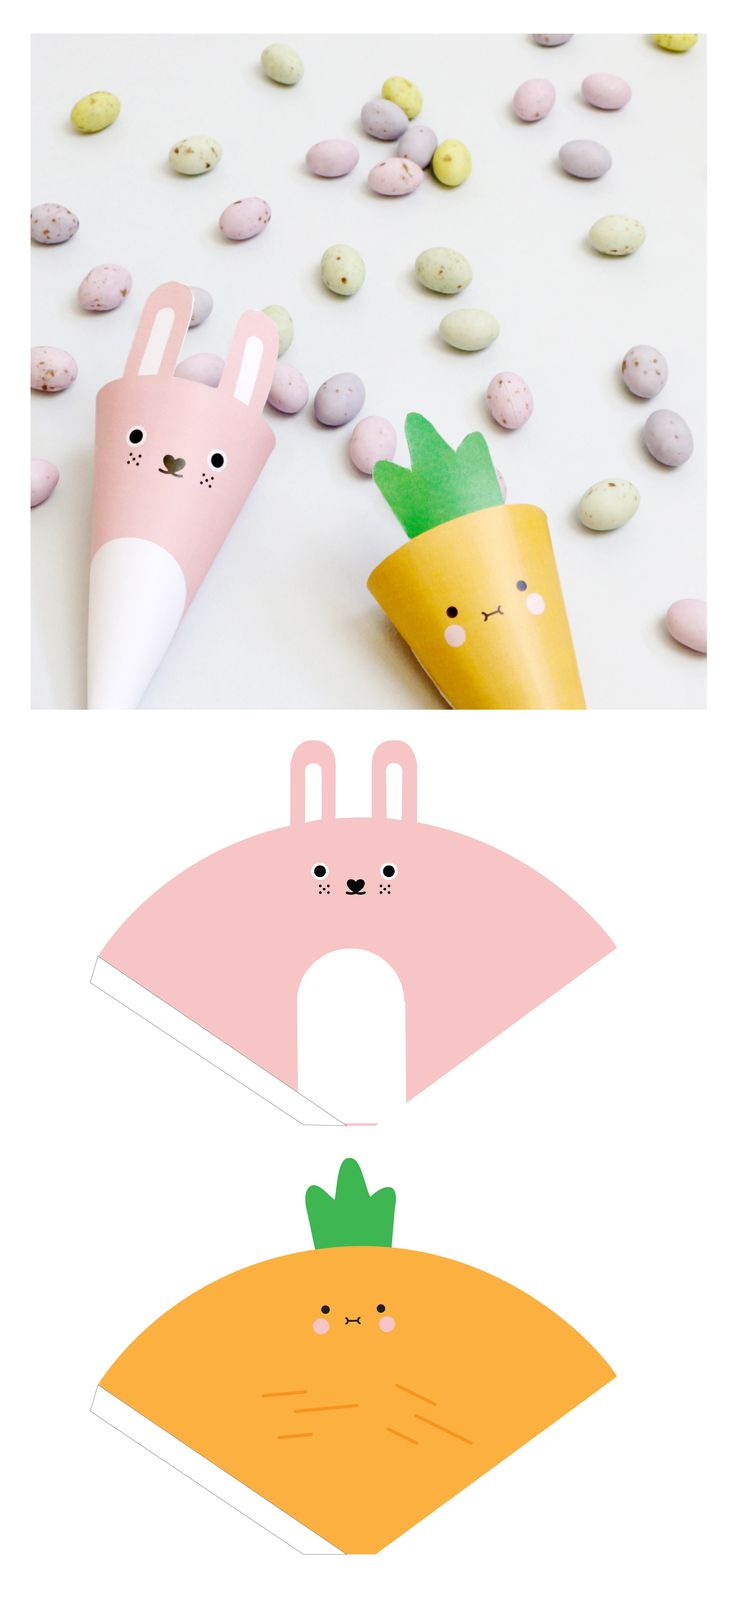 Get ready for Easter with some fun Noodoll DIY projects! Download the templates bellow to make some cute gift boxes and character cones, which are perfect for holding all the little treats you find on your easter egg hunt!